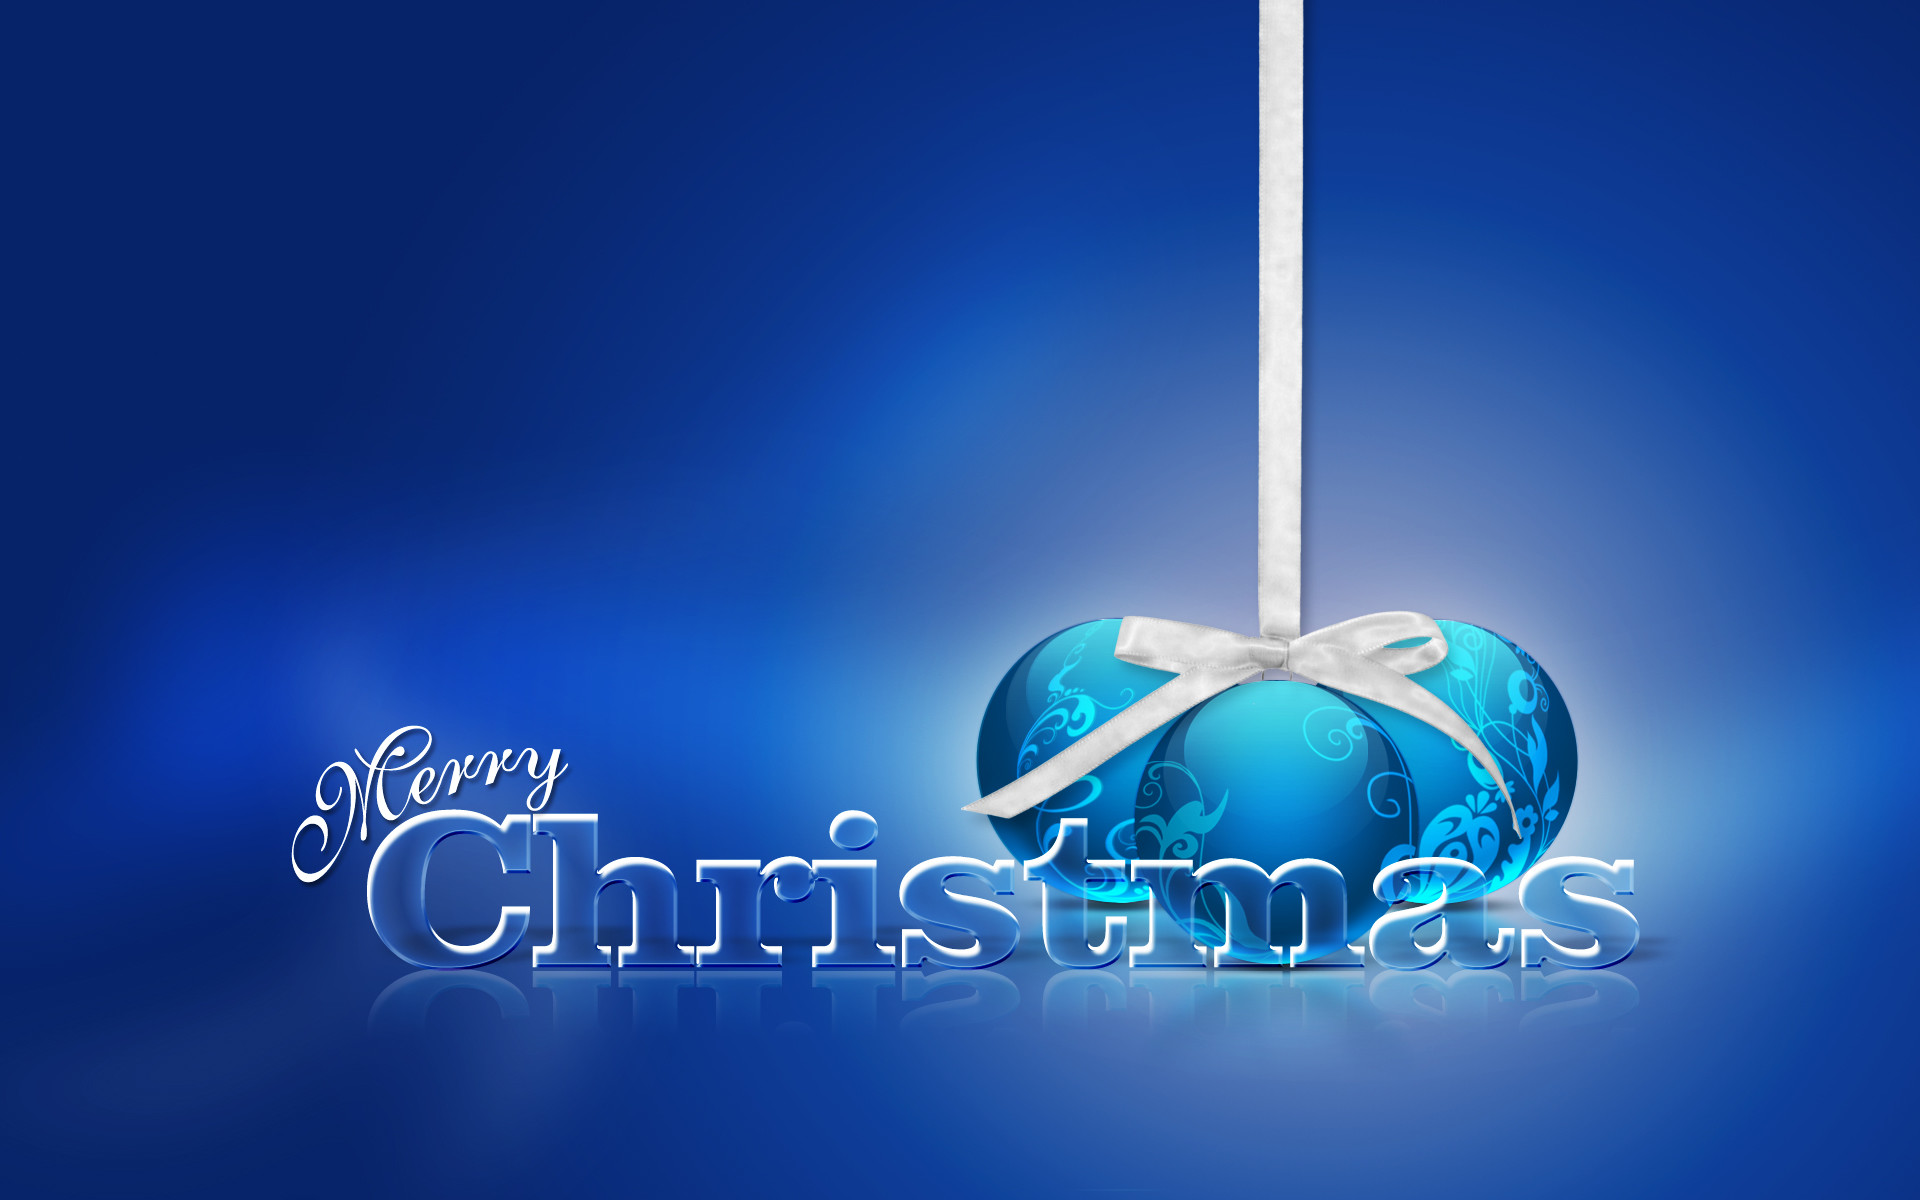 Digital Merry Christmas Wallpapers Pictures.